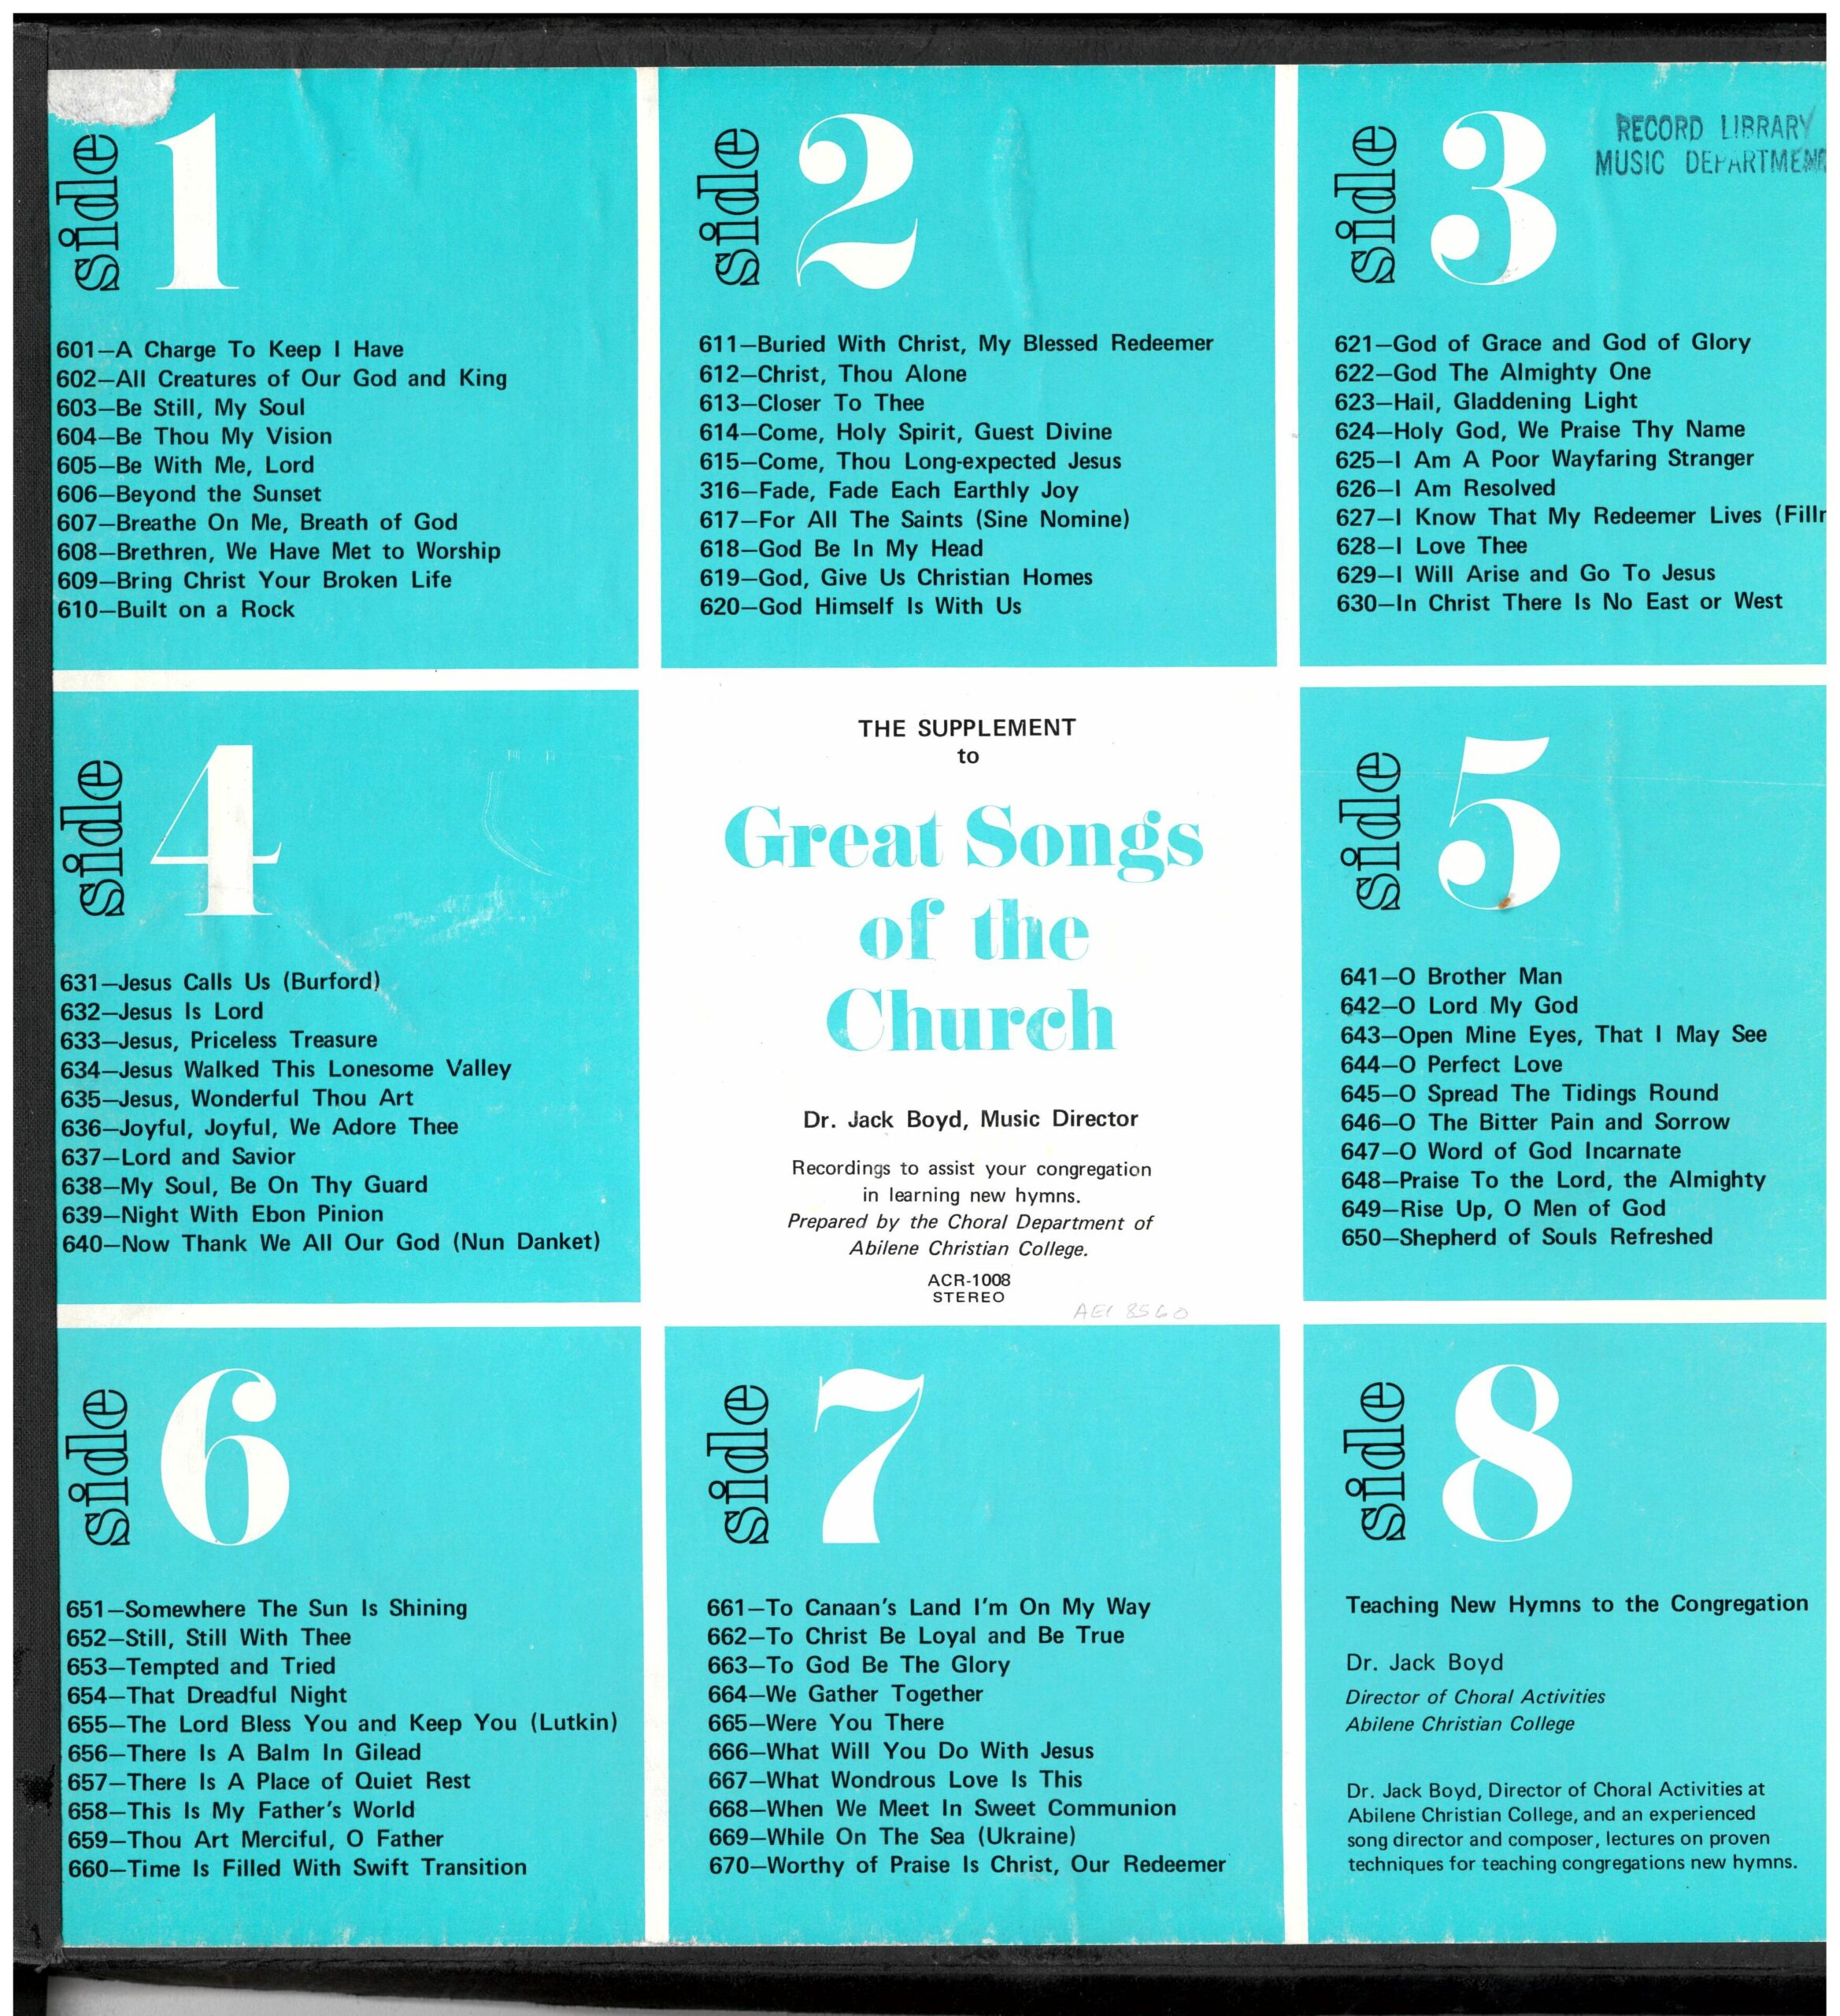 Supplement to Great Songs of the Church LP album